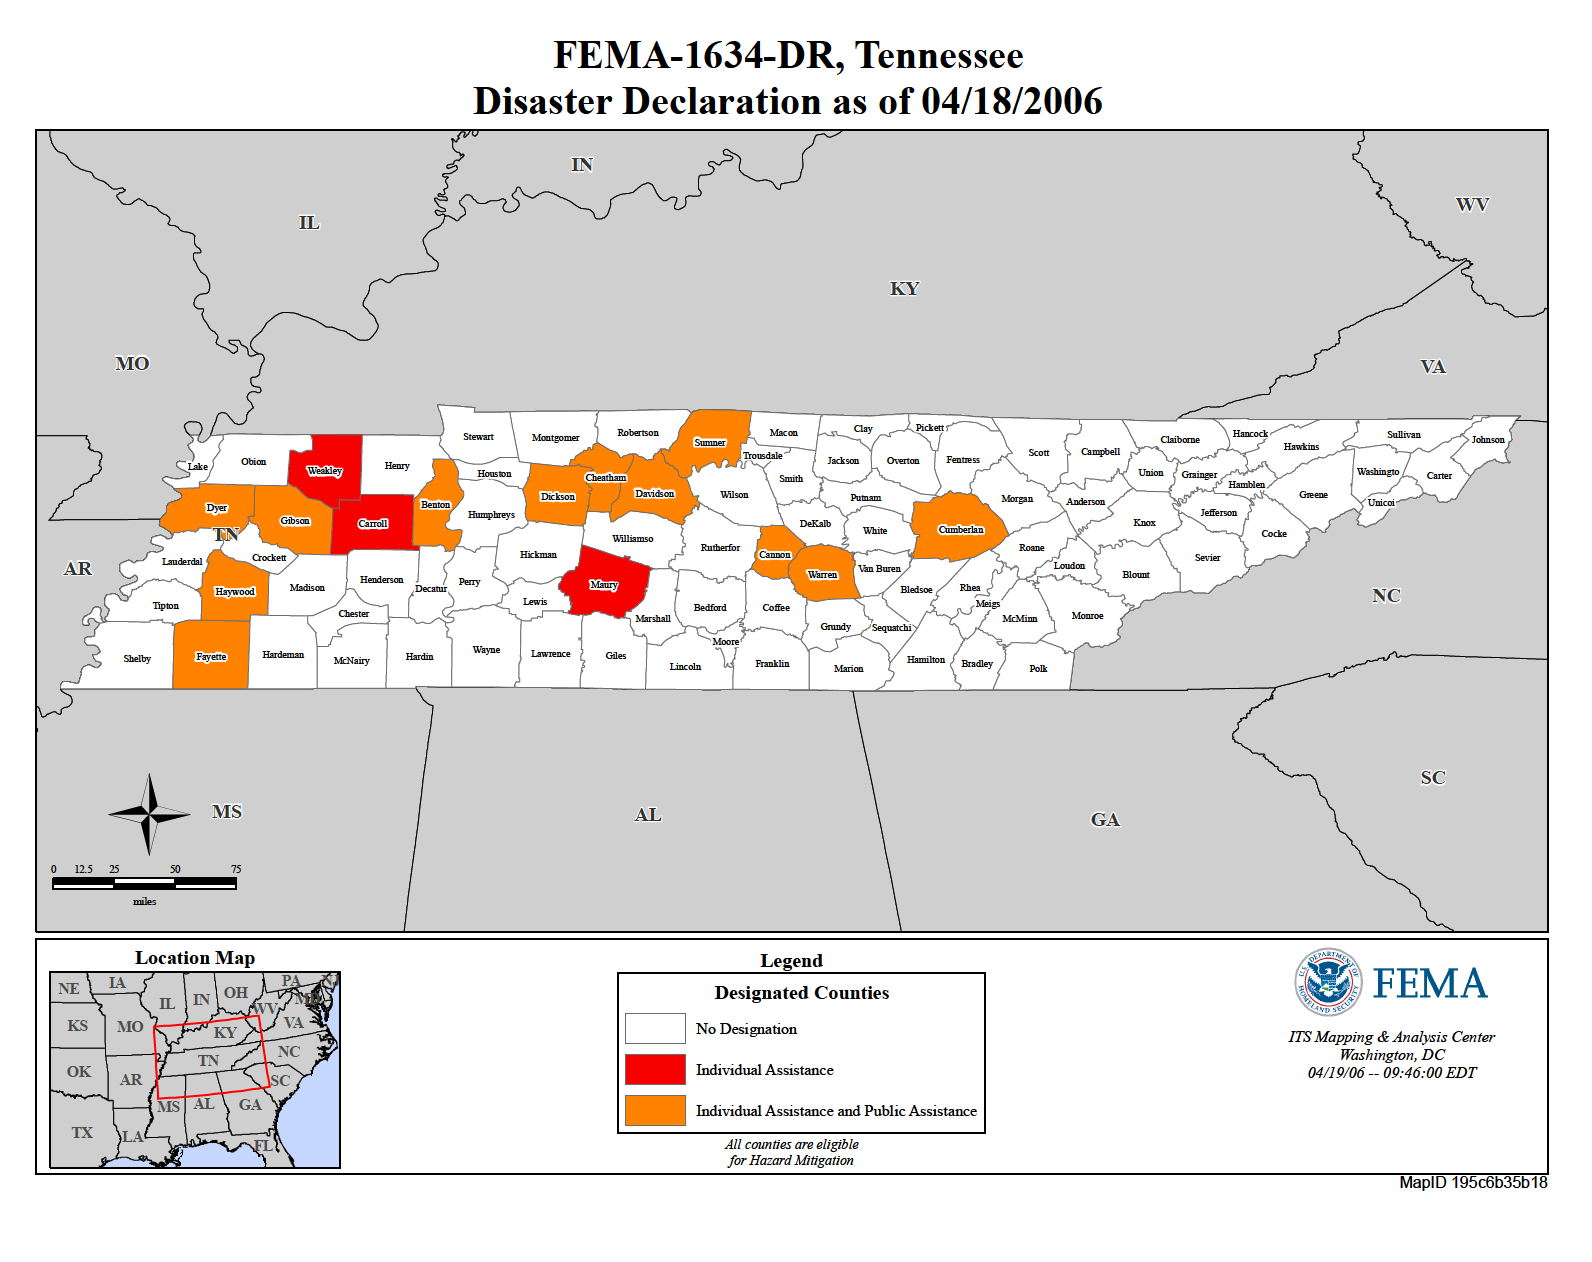 Tennessee Severe Storms And Tornadoes Dr 1634 Fema Gov